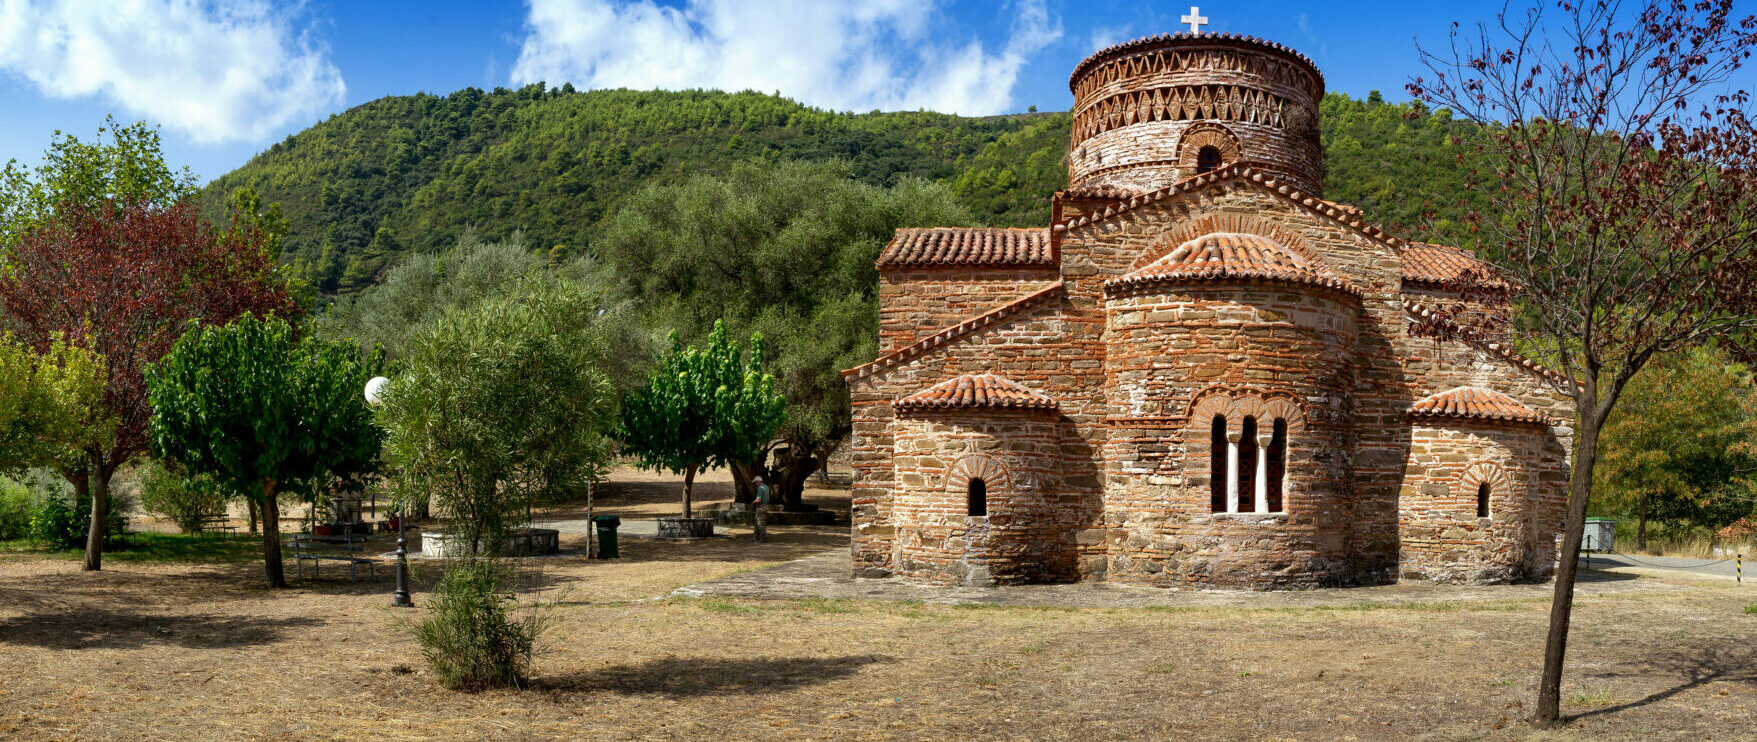 The imposing churches of Greece dedicated to Virgin Mary